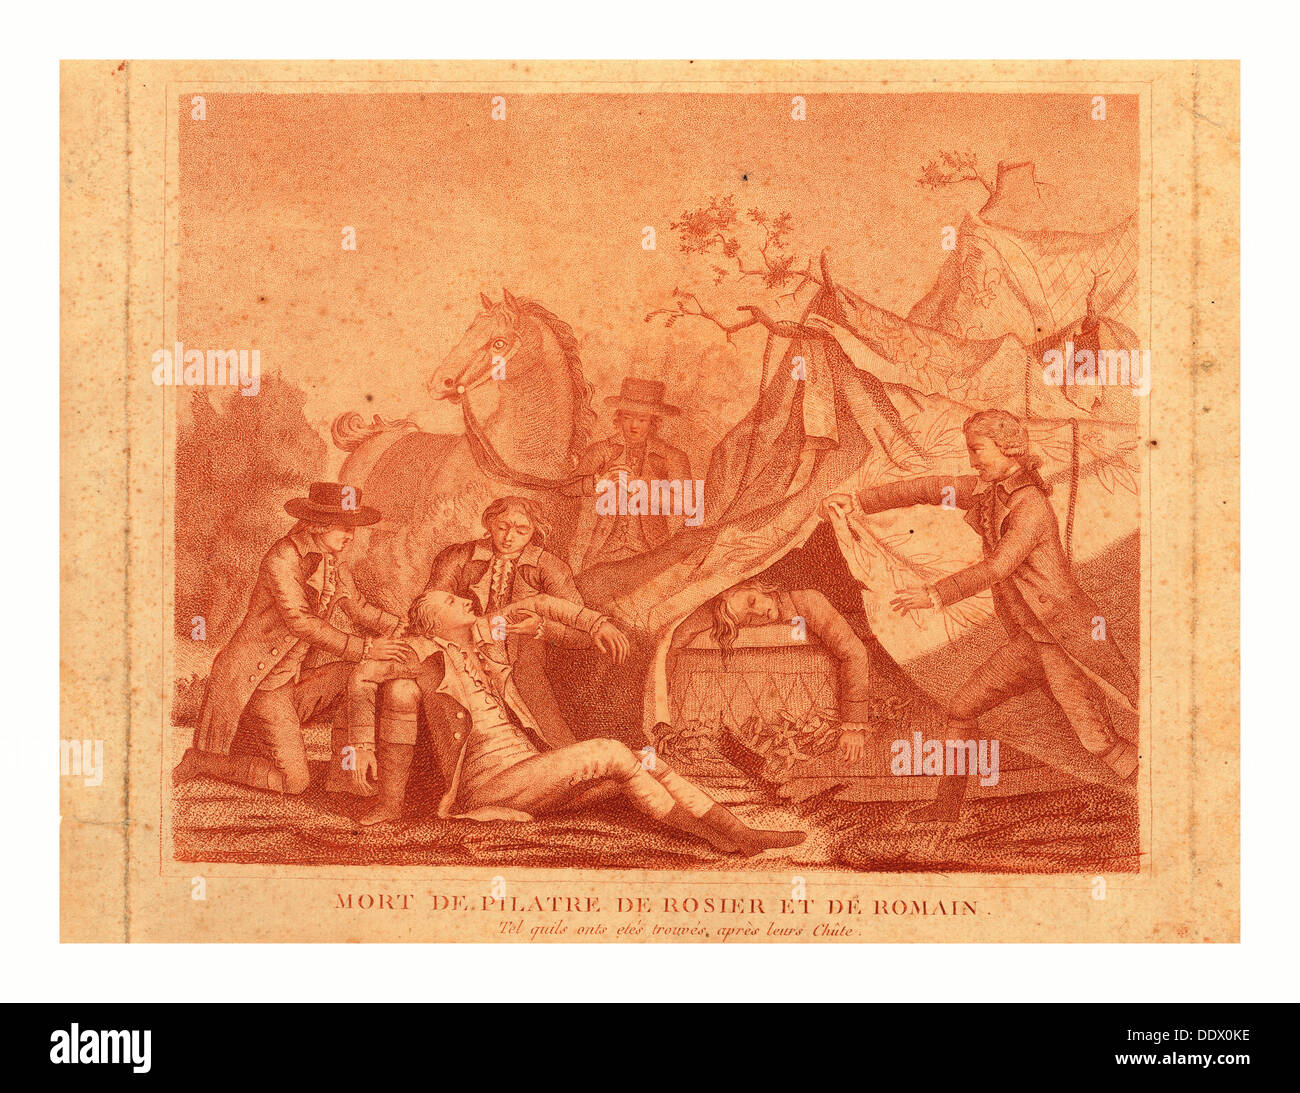 Print shows the death of balloonists Jean-François Pilatre de Rozier and Jules Romain when their Royal Balloon crashed - Stock Image